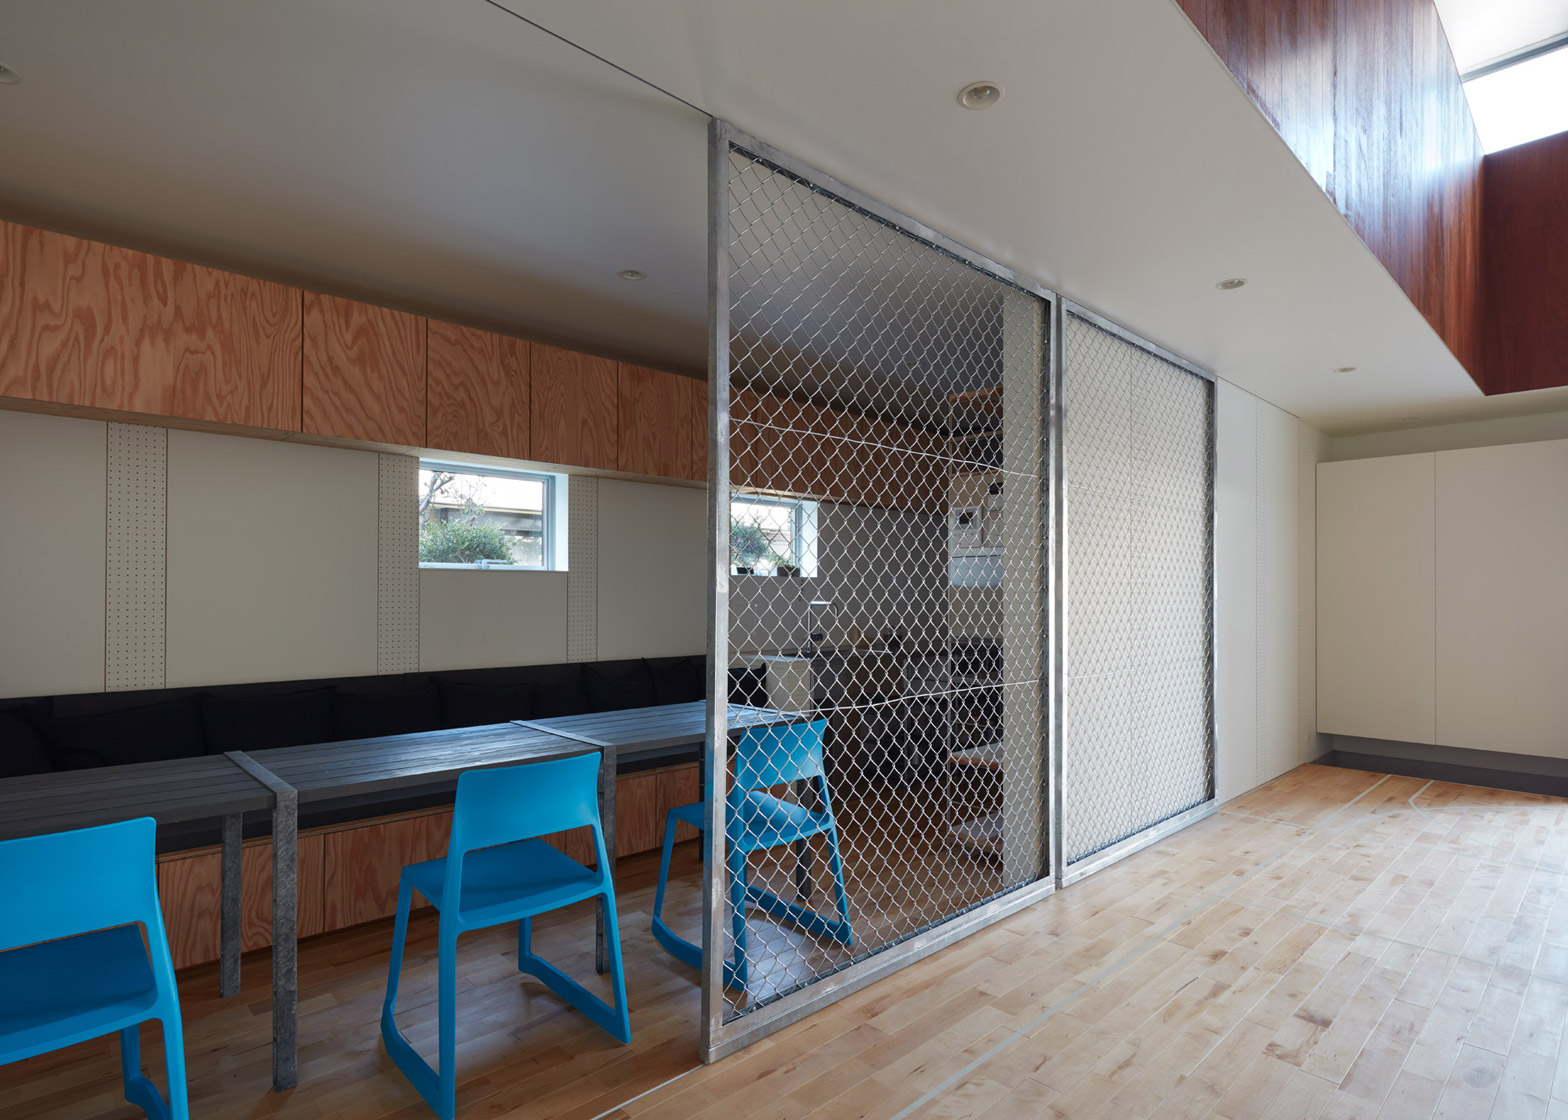 Dining Of Basketball Court House By Koizumi Sekkei Koizumi Sekkei Designs House Basketball Court At Its Basketball Courts Queens Basketball Court Nyc Japan houzz-03 Indoor Basketball Court